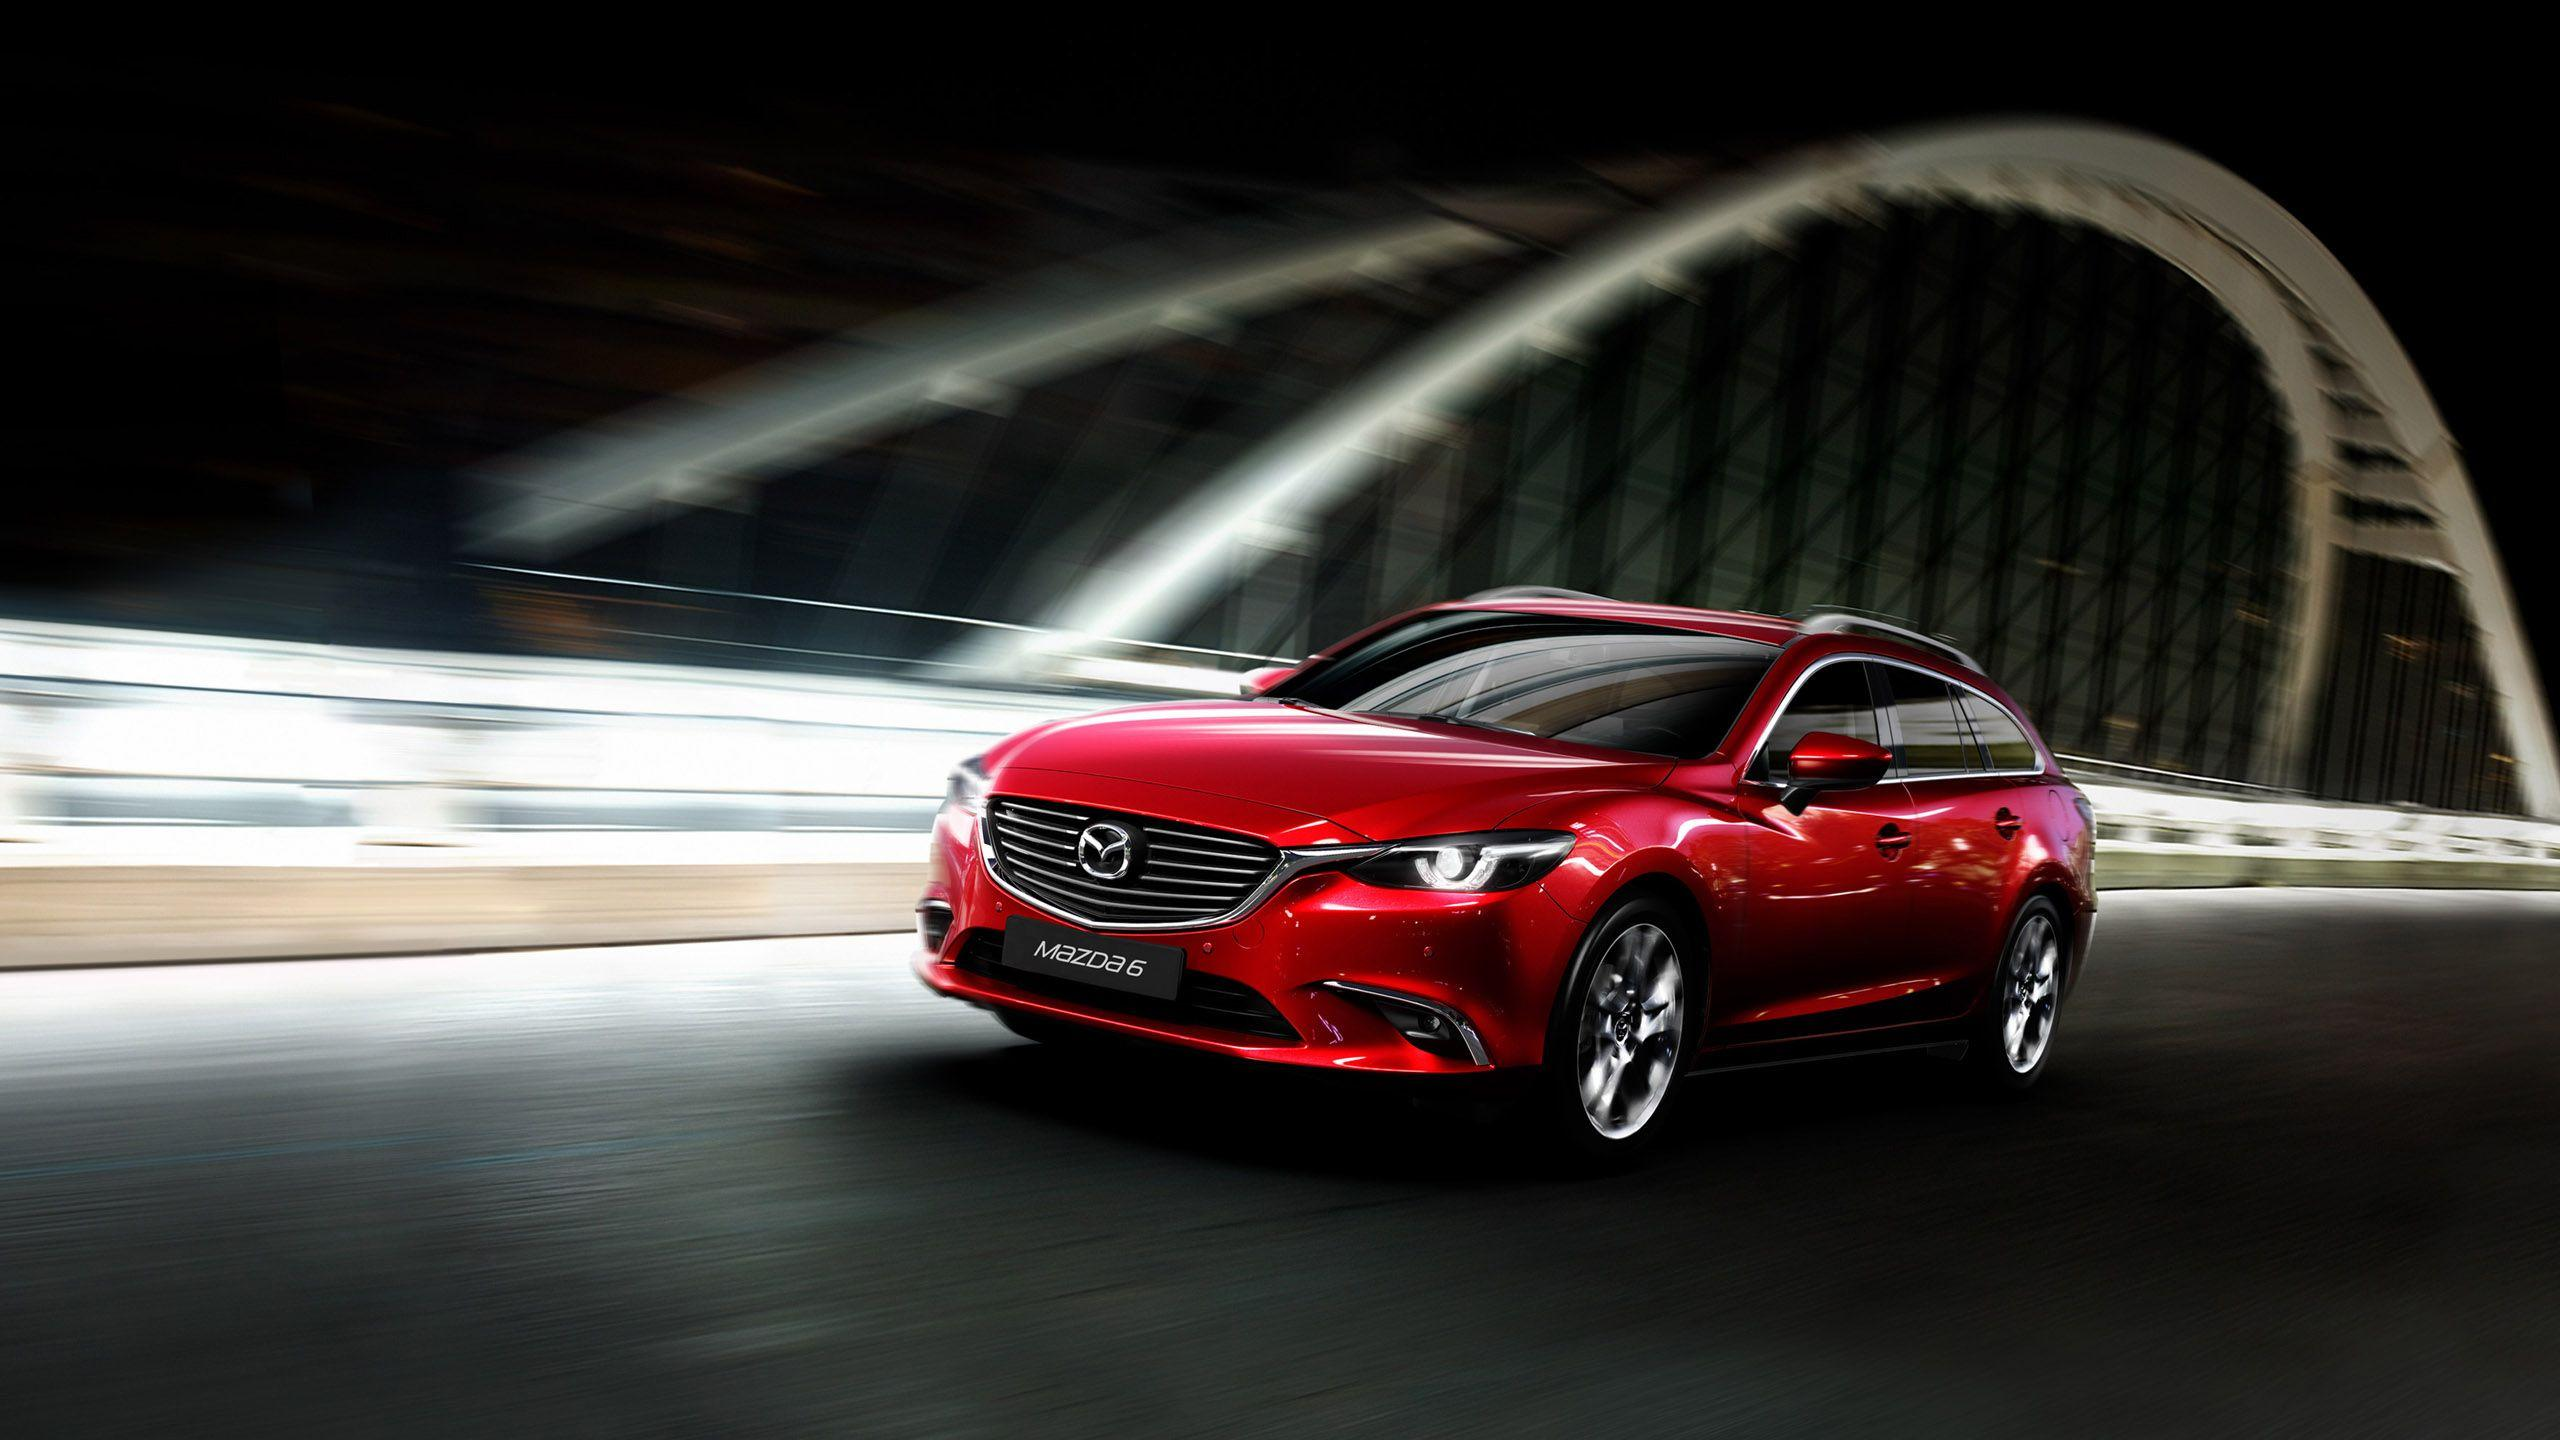 2015 Mazda 6 Wallpaper for Desktop Attachment #9319 - Rimbuz.Com